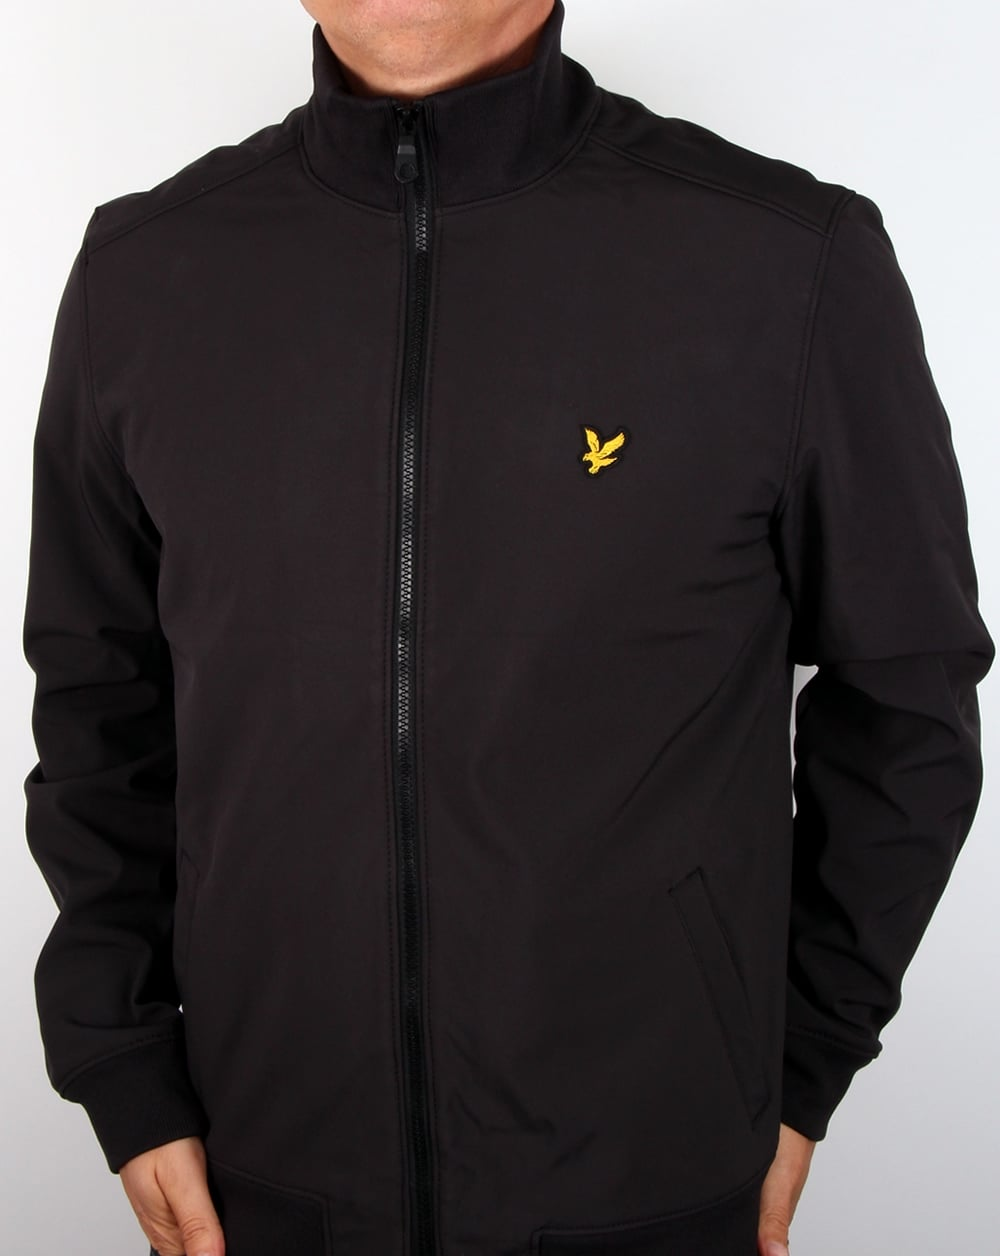 lyle and scott soft shell jacket true black men 39 s coat. Black Bedroom Furniture Sets. Home Design Ideas